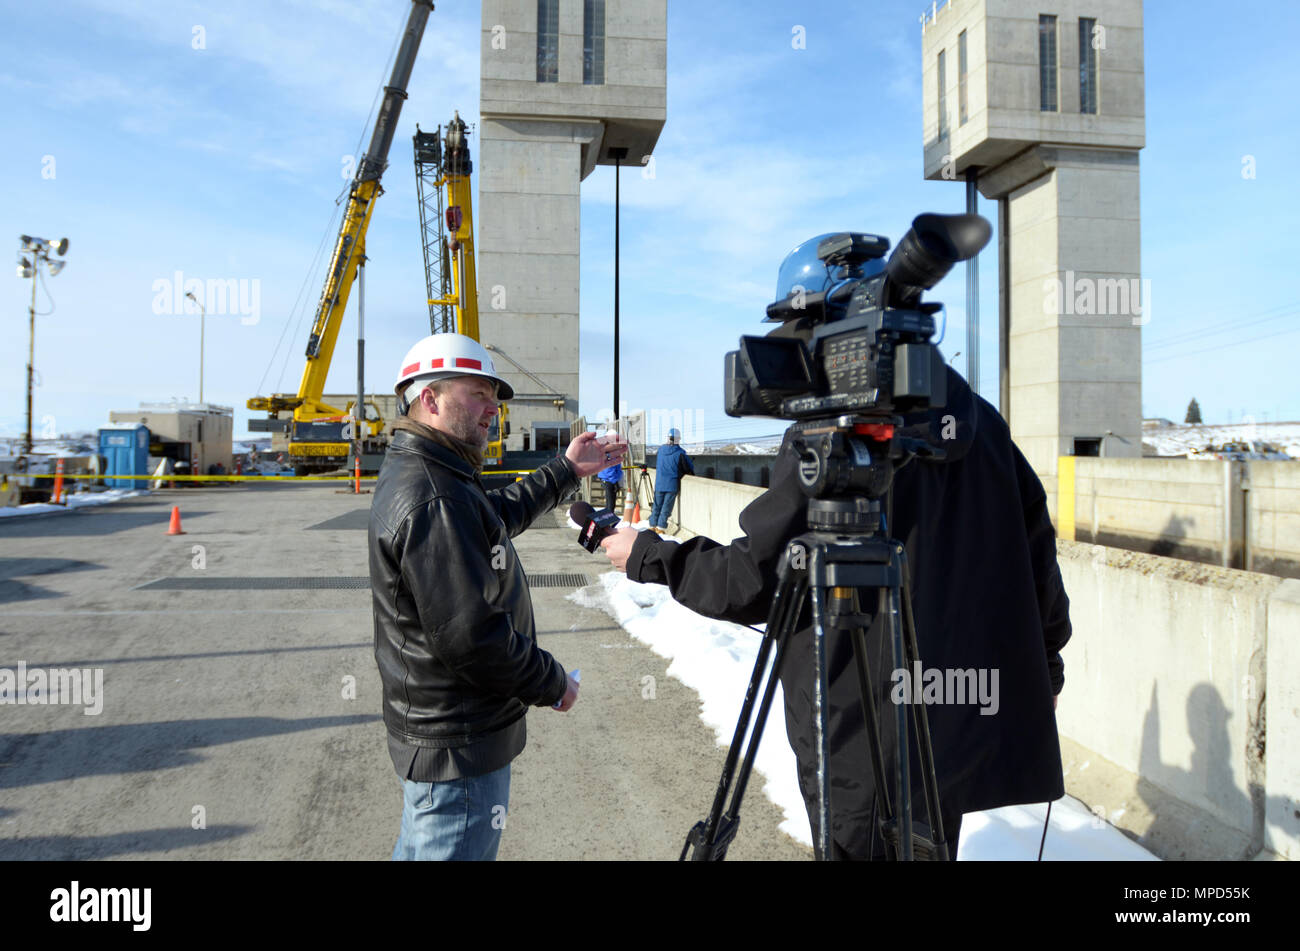 Us Army Corps Of Engineers Project Manager Steve Thompson Basic Electrical Wiring About Provides An Interview Feb 2 2017 To A News Reporter Telling Him The 2016